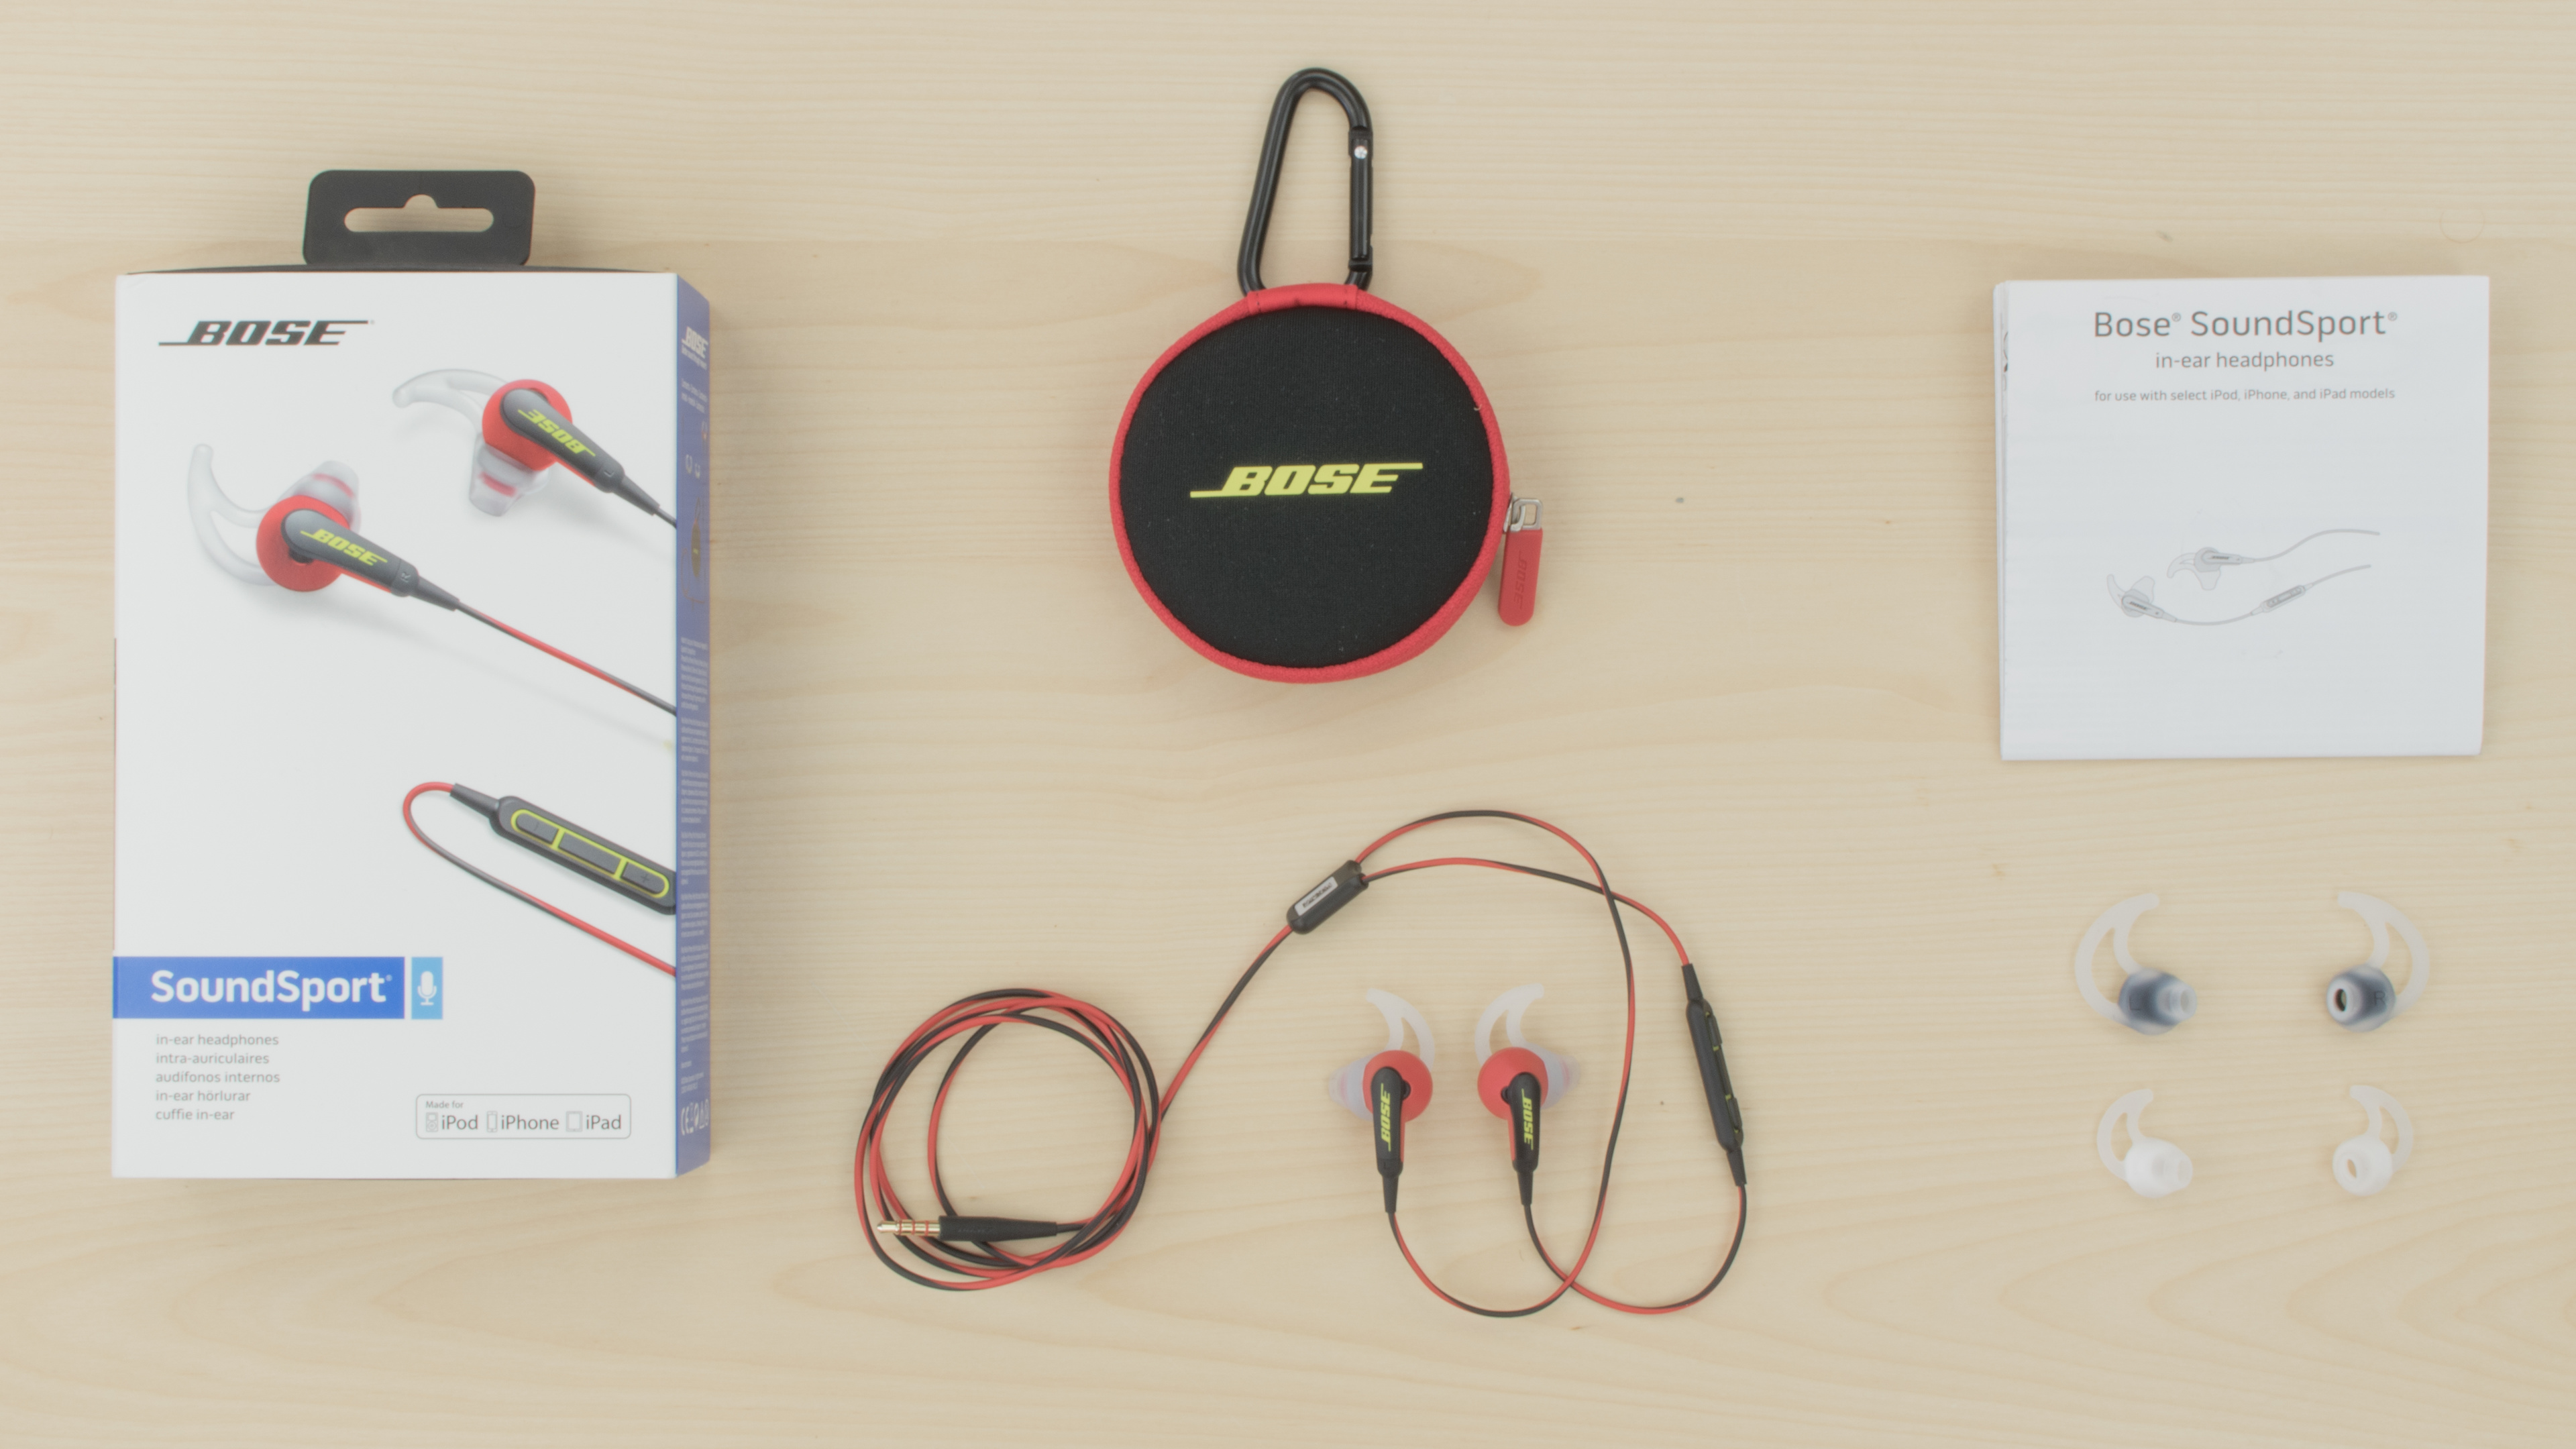 bose headphones sport box. bose soundsport in-ear in the box picture headphones sport p